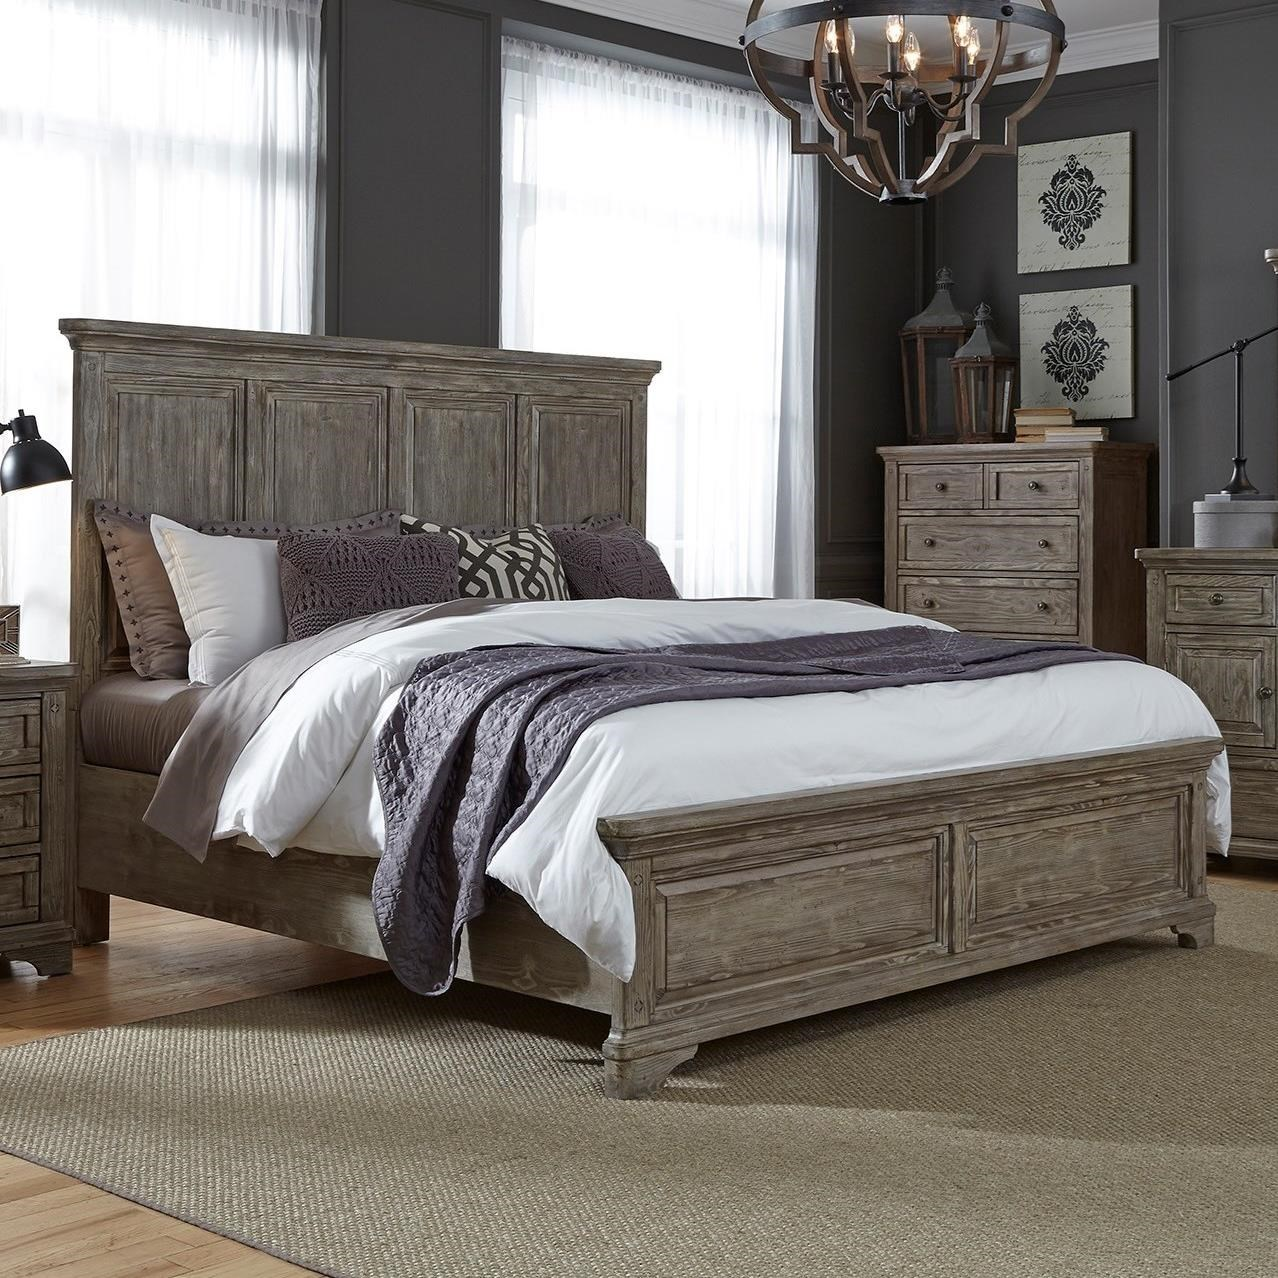 Superieur Liberty Furniture HighlandsKing Panel Bed